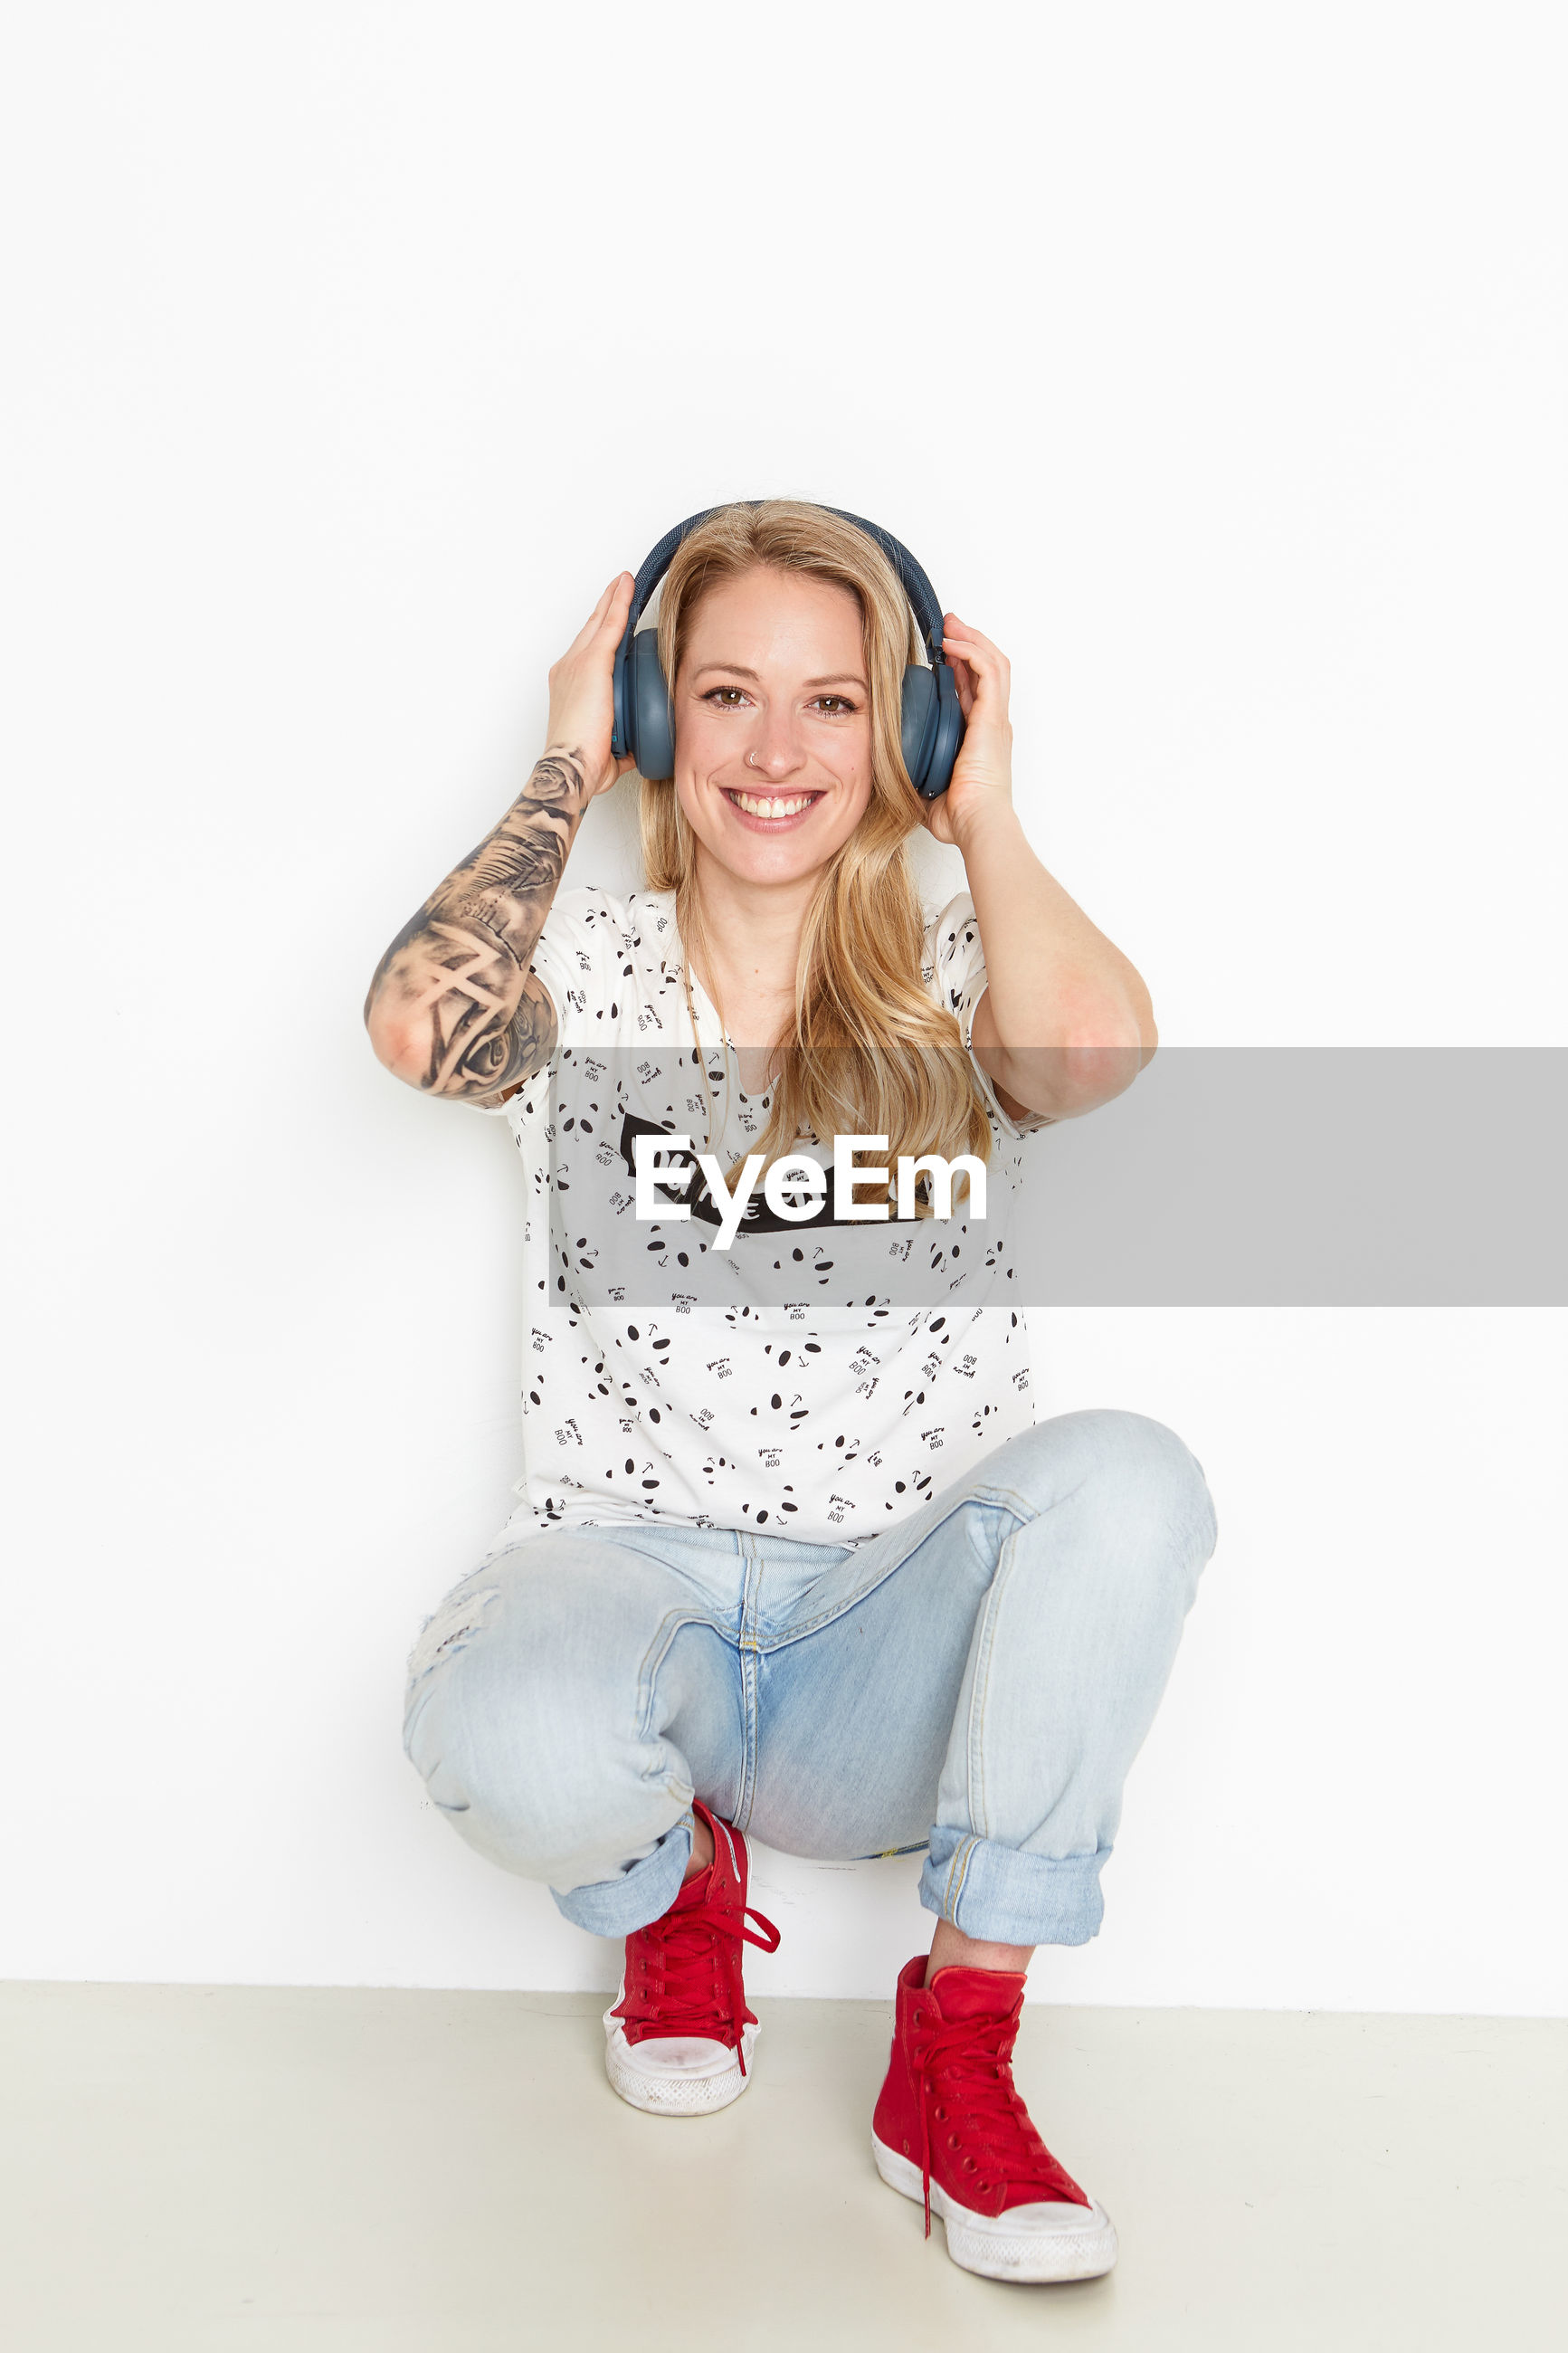 Portrait of smiling woman holding headphones while crouching against wall